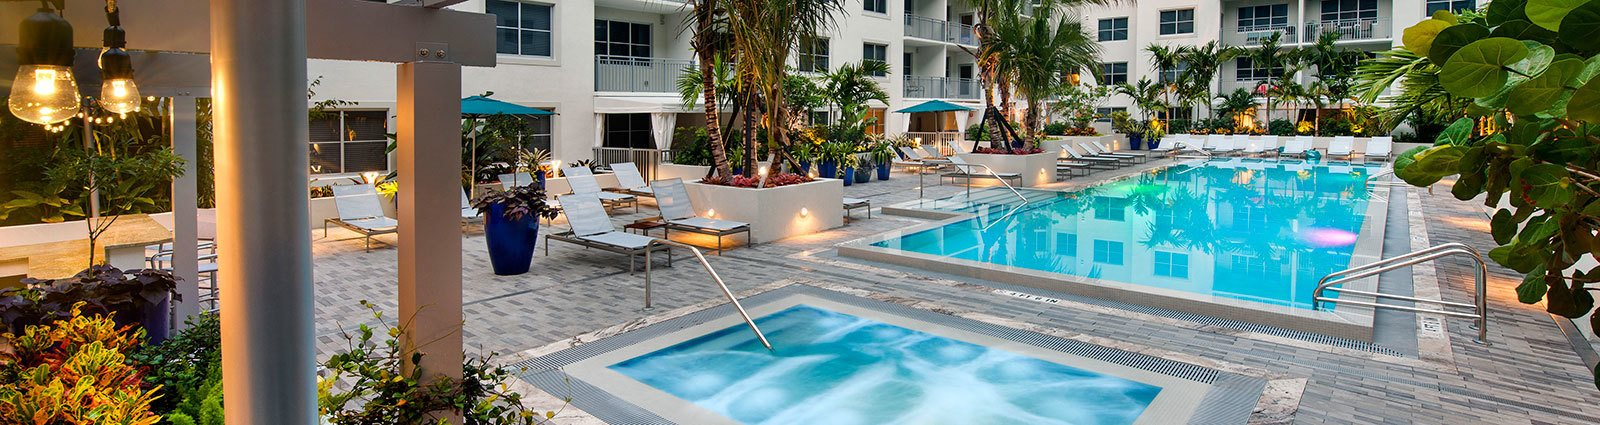 Pet friendly apartments in Ft. Lauderdale, FL